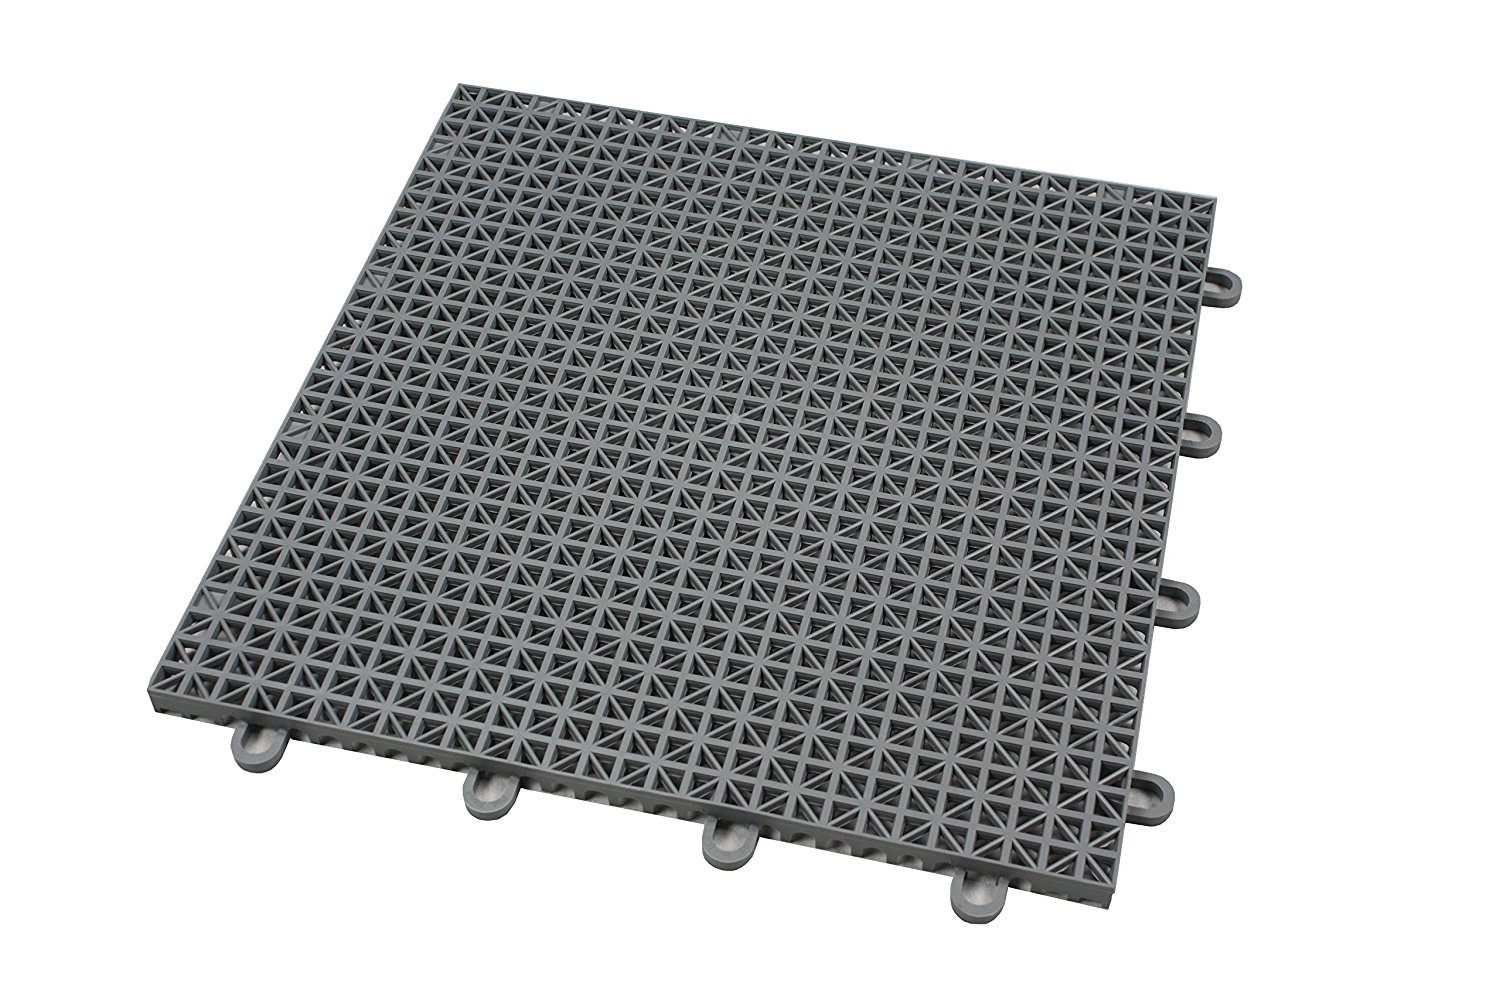 Five Great Types Of Kennel Flooring For Dogs Animal Hub